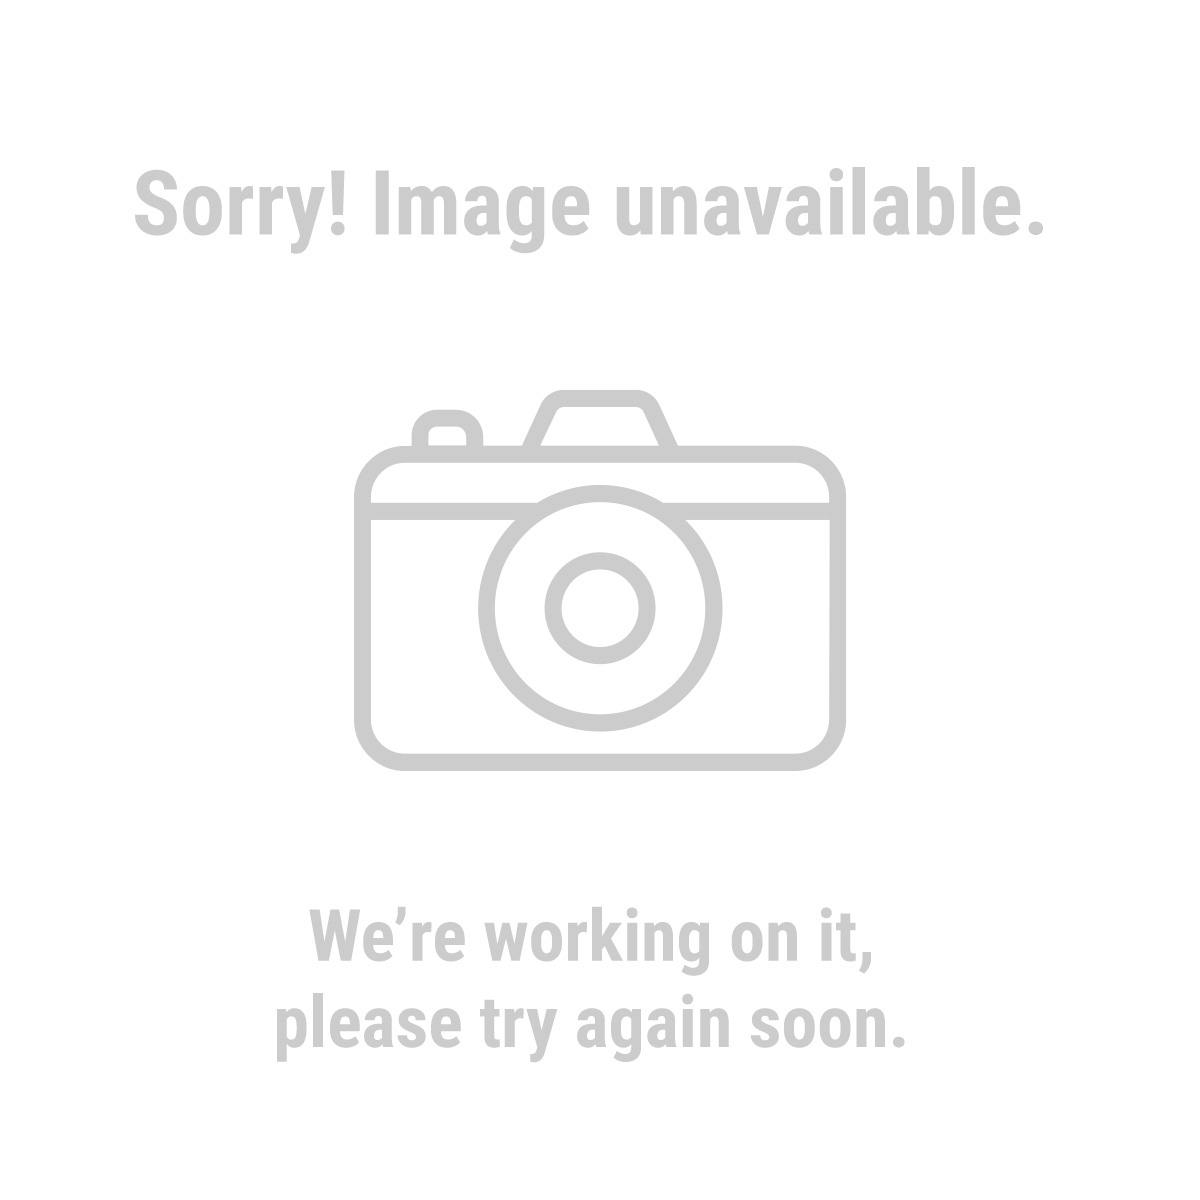 Central Forge 95203 Portable Carpenter's Vise